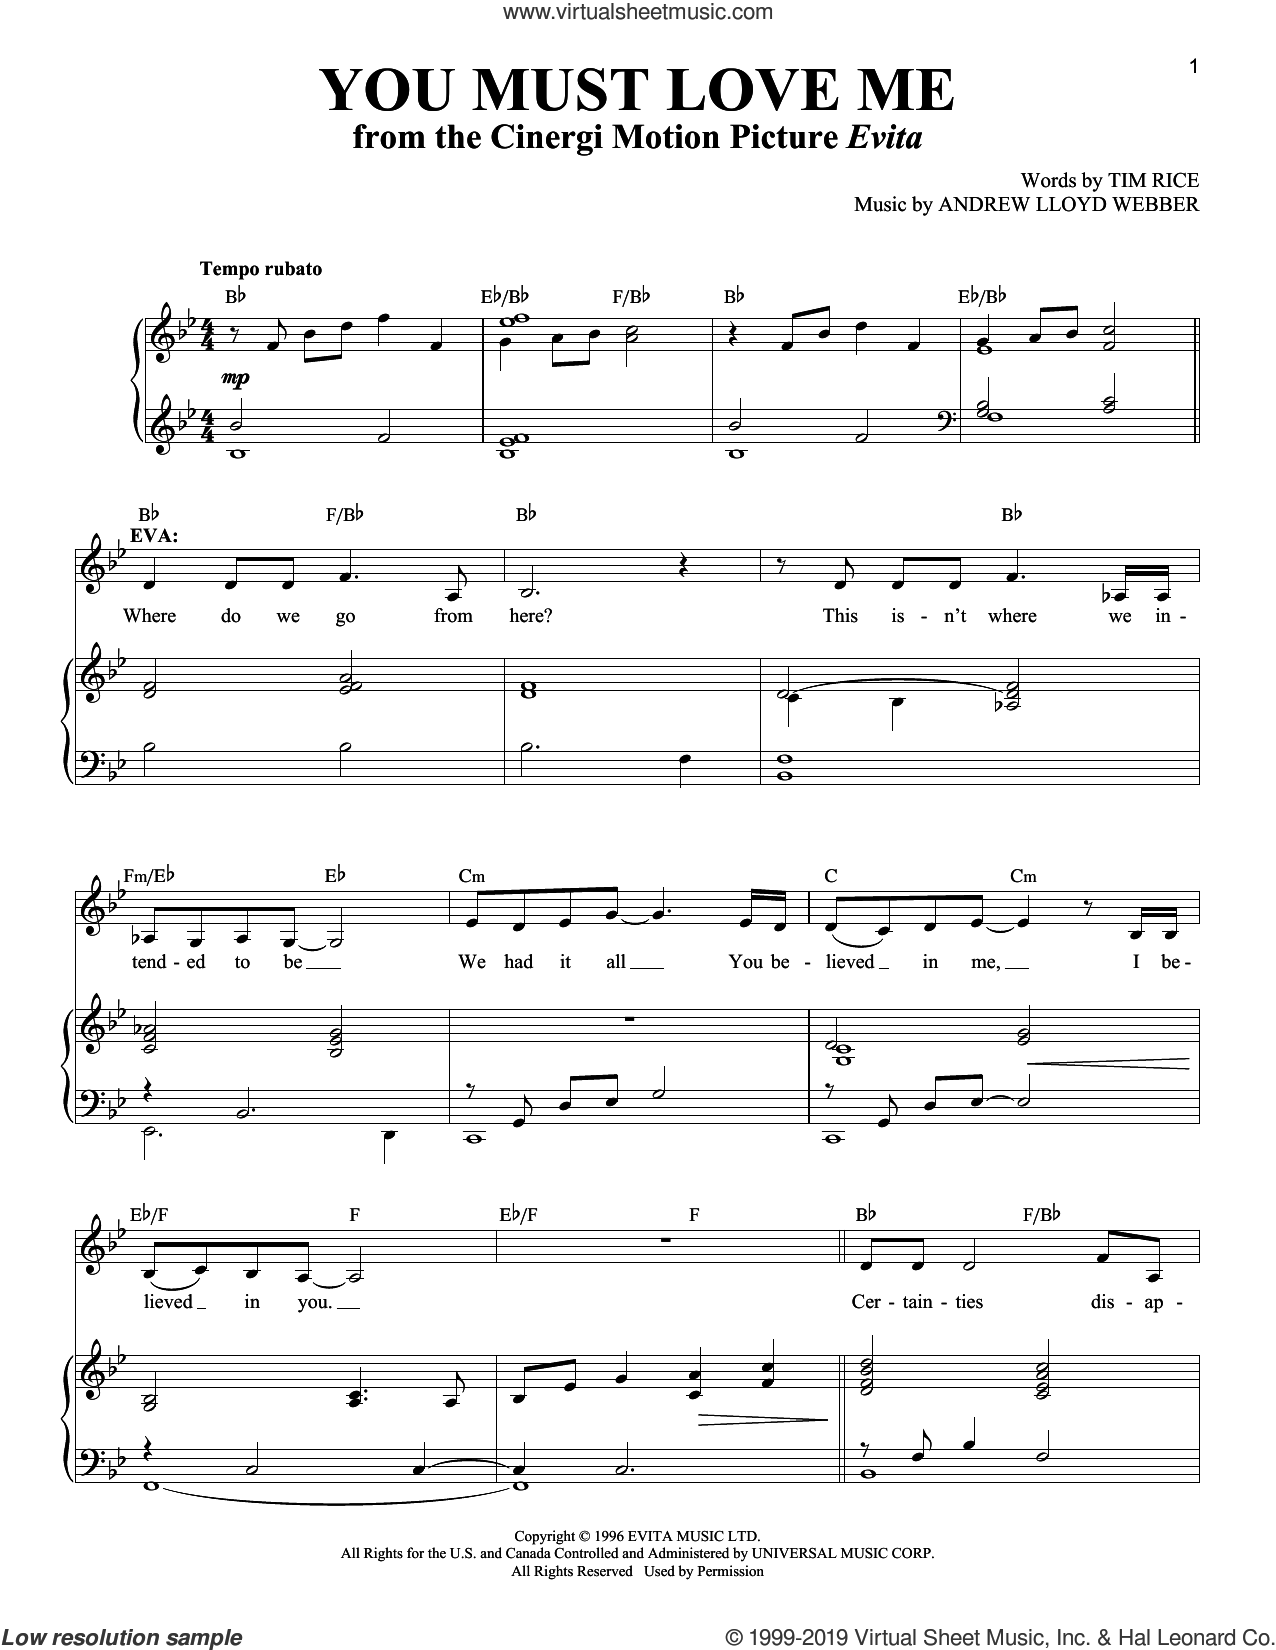 You Must Love Me (from Evita) sheet music for voice and piano by Andrew Lloyd Webber and Tim Rice, intermediate skill level